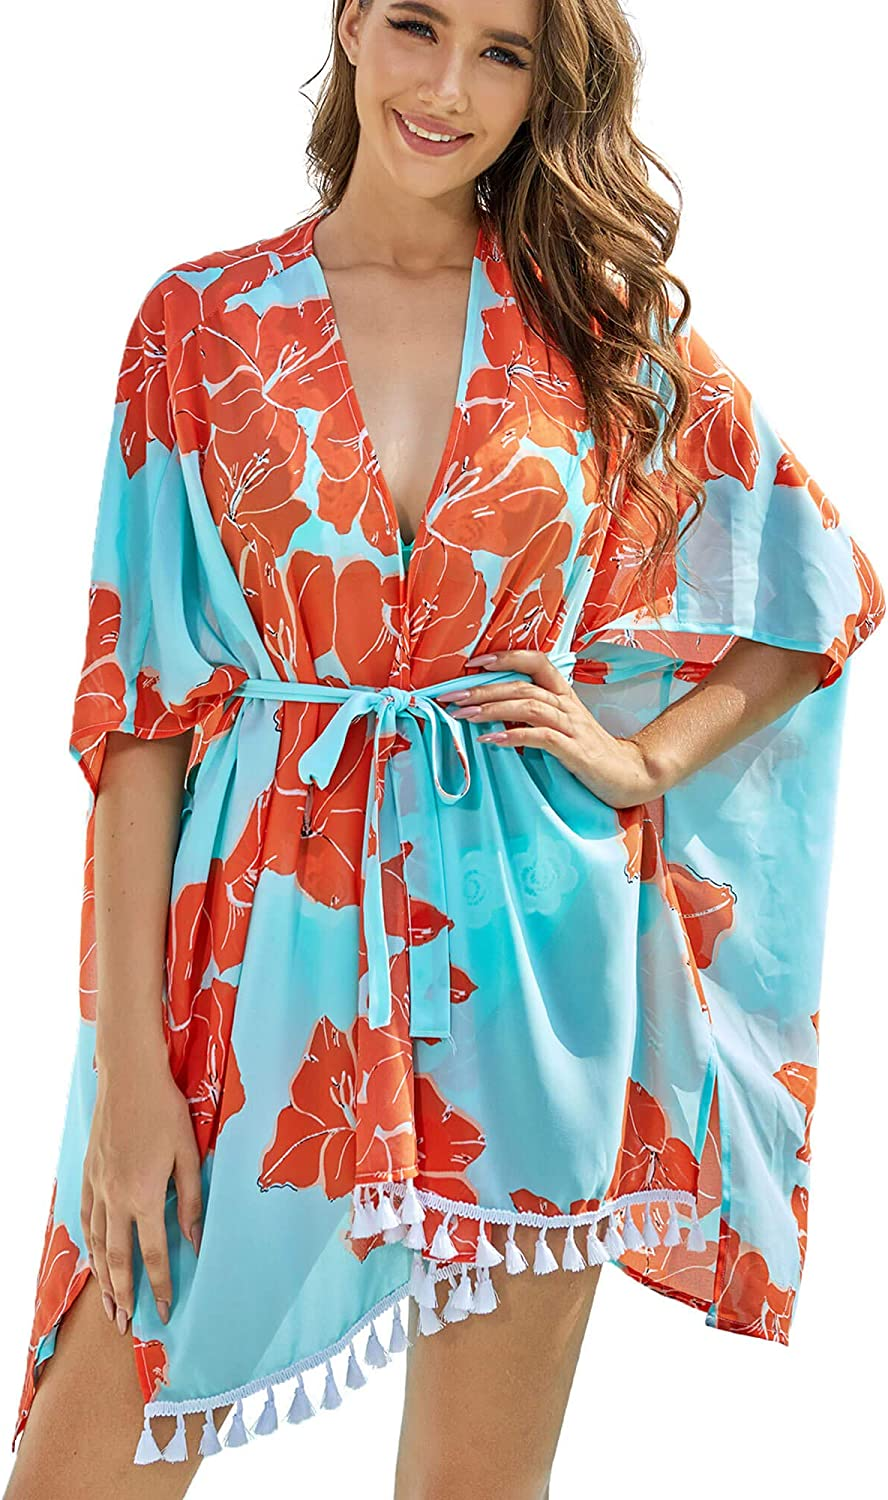 Rose Kimono Cardigan With Pockets  24K Gold Plated Rose Buttons  More Colors  Flowy  Kimono Sleeve  Cover-up  Jersey Sweater  Fashion